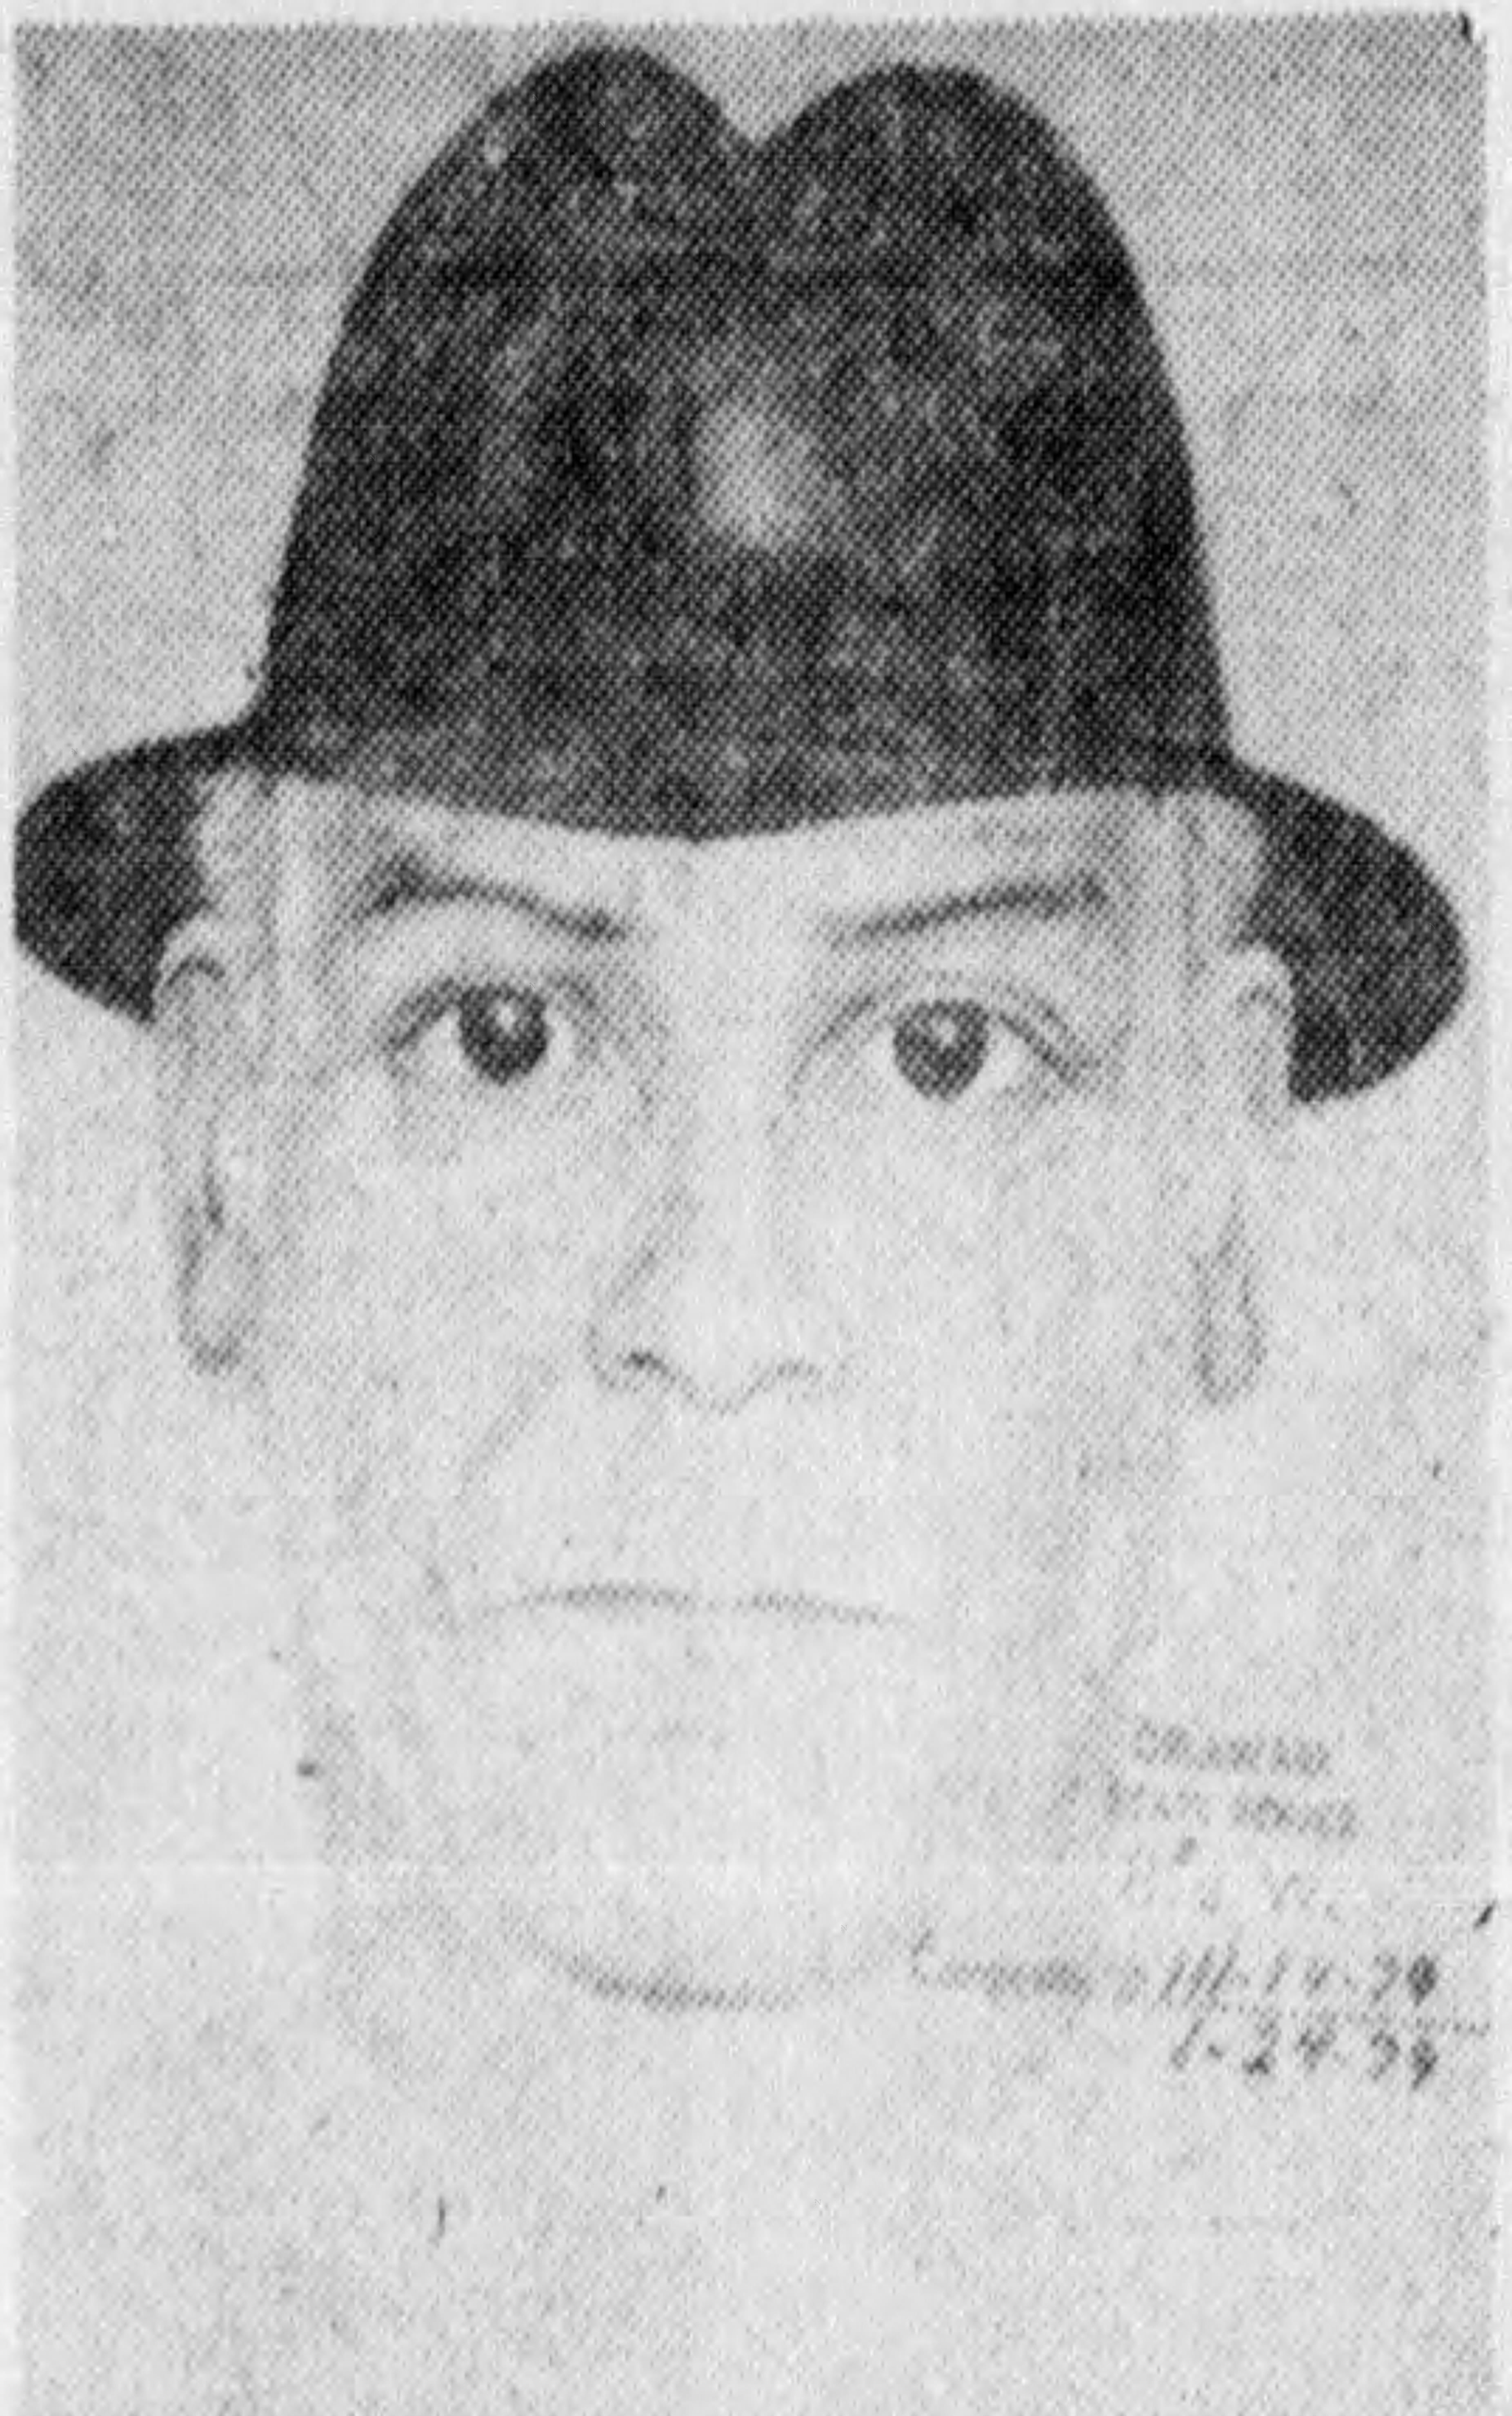 Delaware's Gentleman Bandit was born on a cold night in 1979